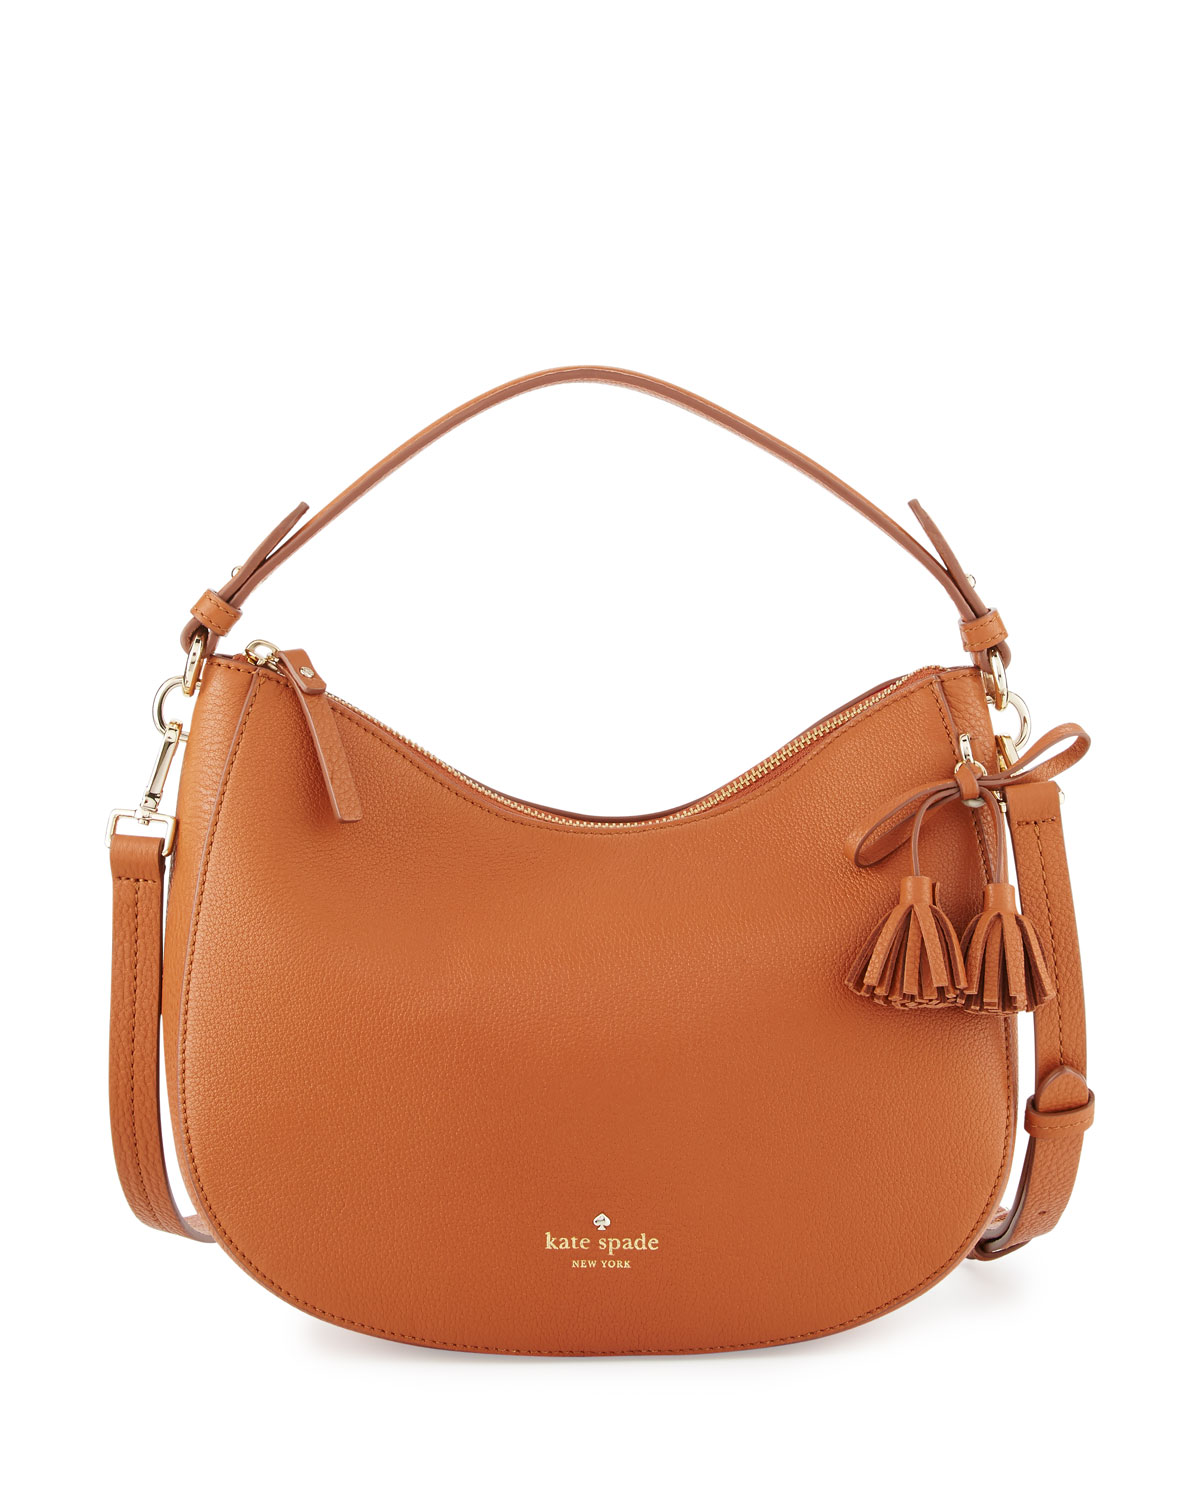 7882f22a04fe kate spade new york hayes street small aiden crossbody bag | Neiman ...